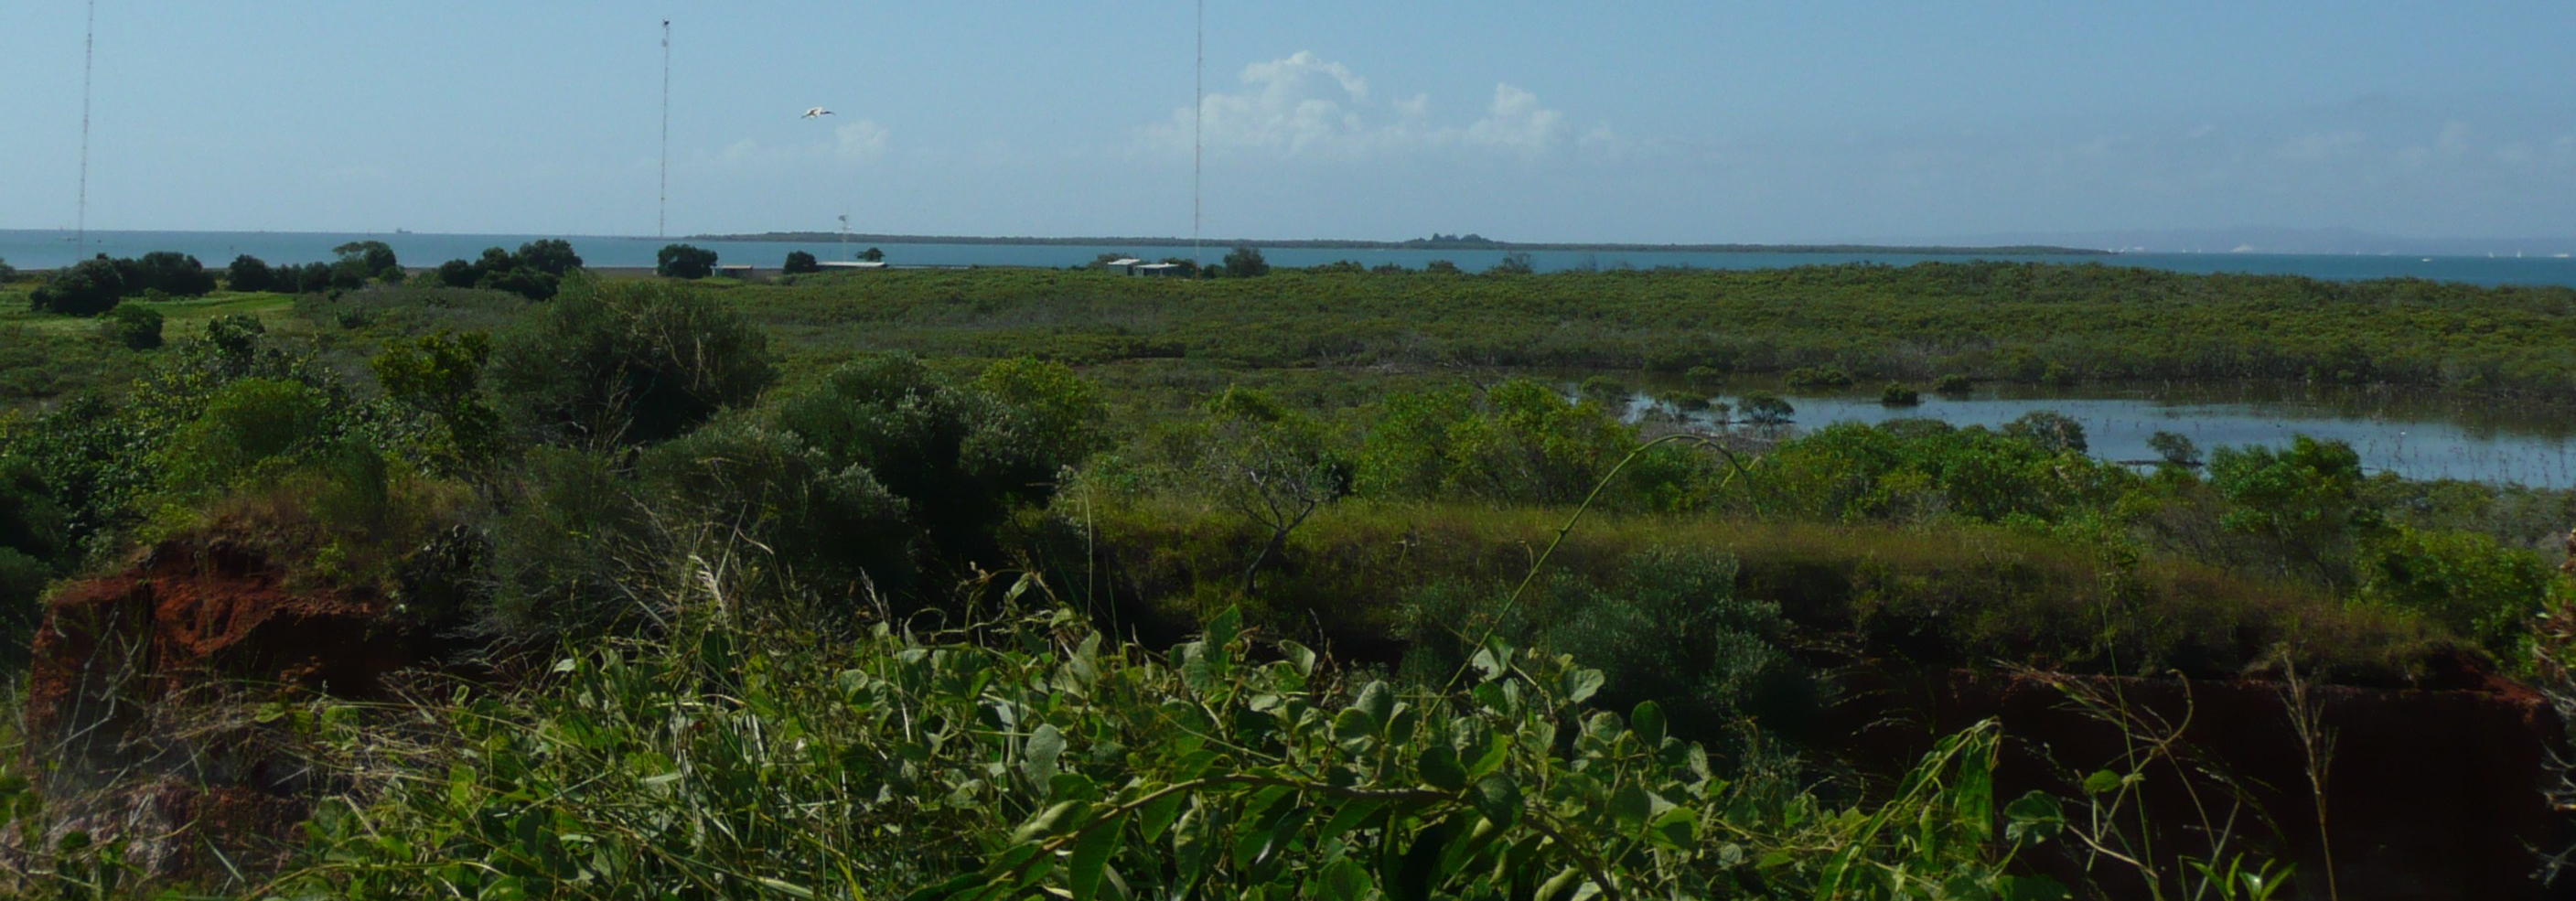 wetlands and radio towers